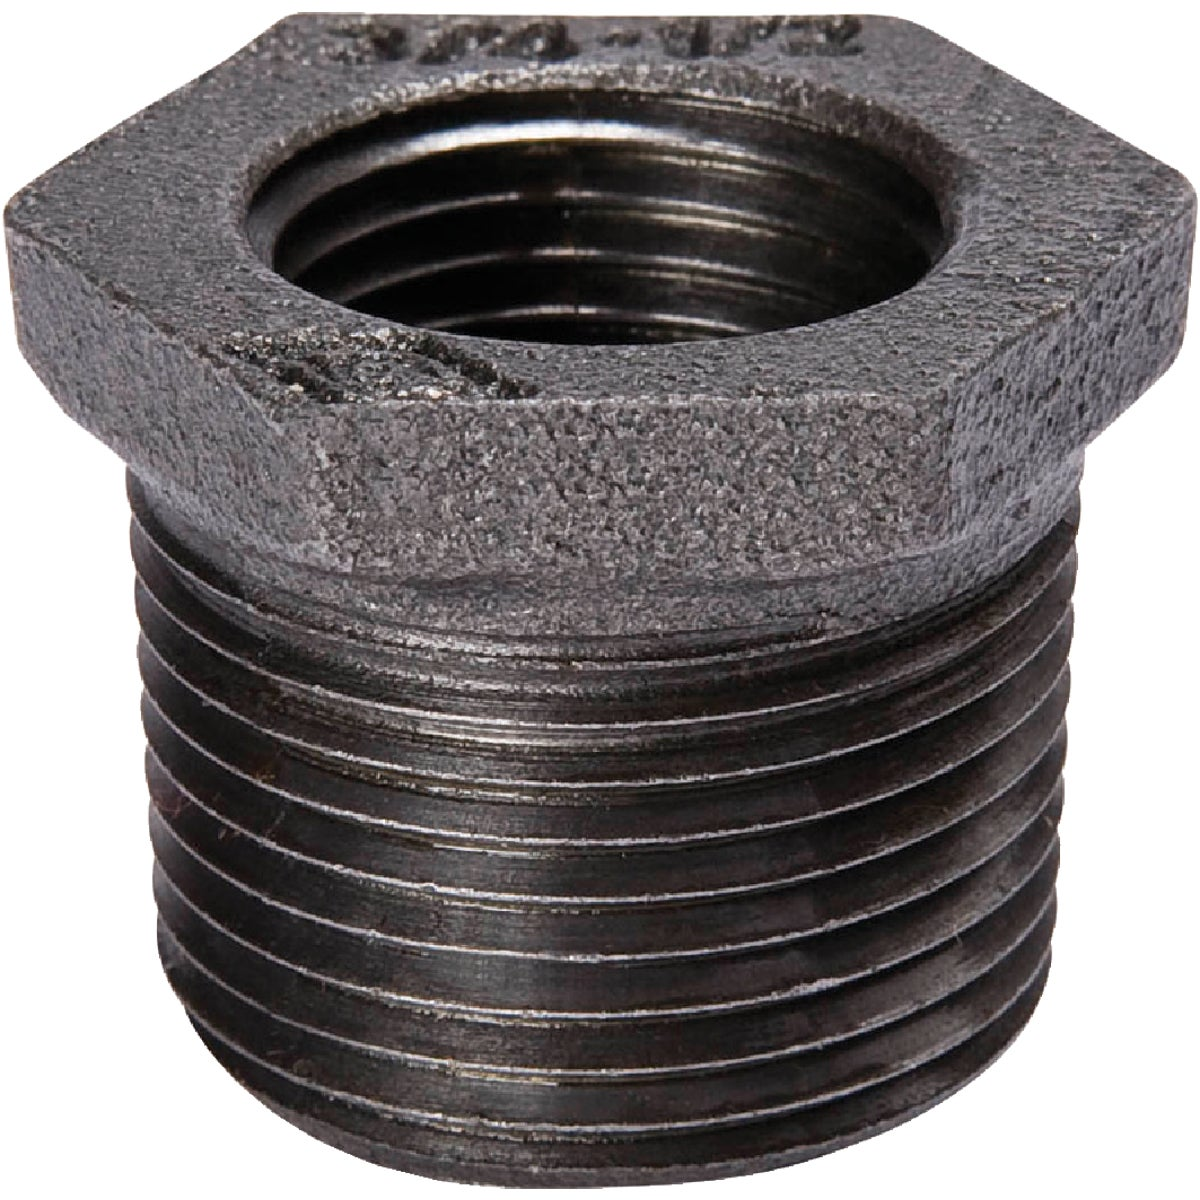 1/2X1/4 BLACK BUSHING - 521-931BG by Mueller B K